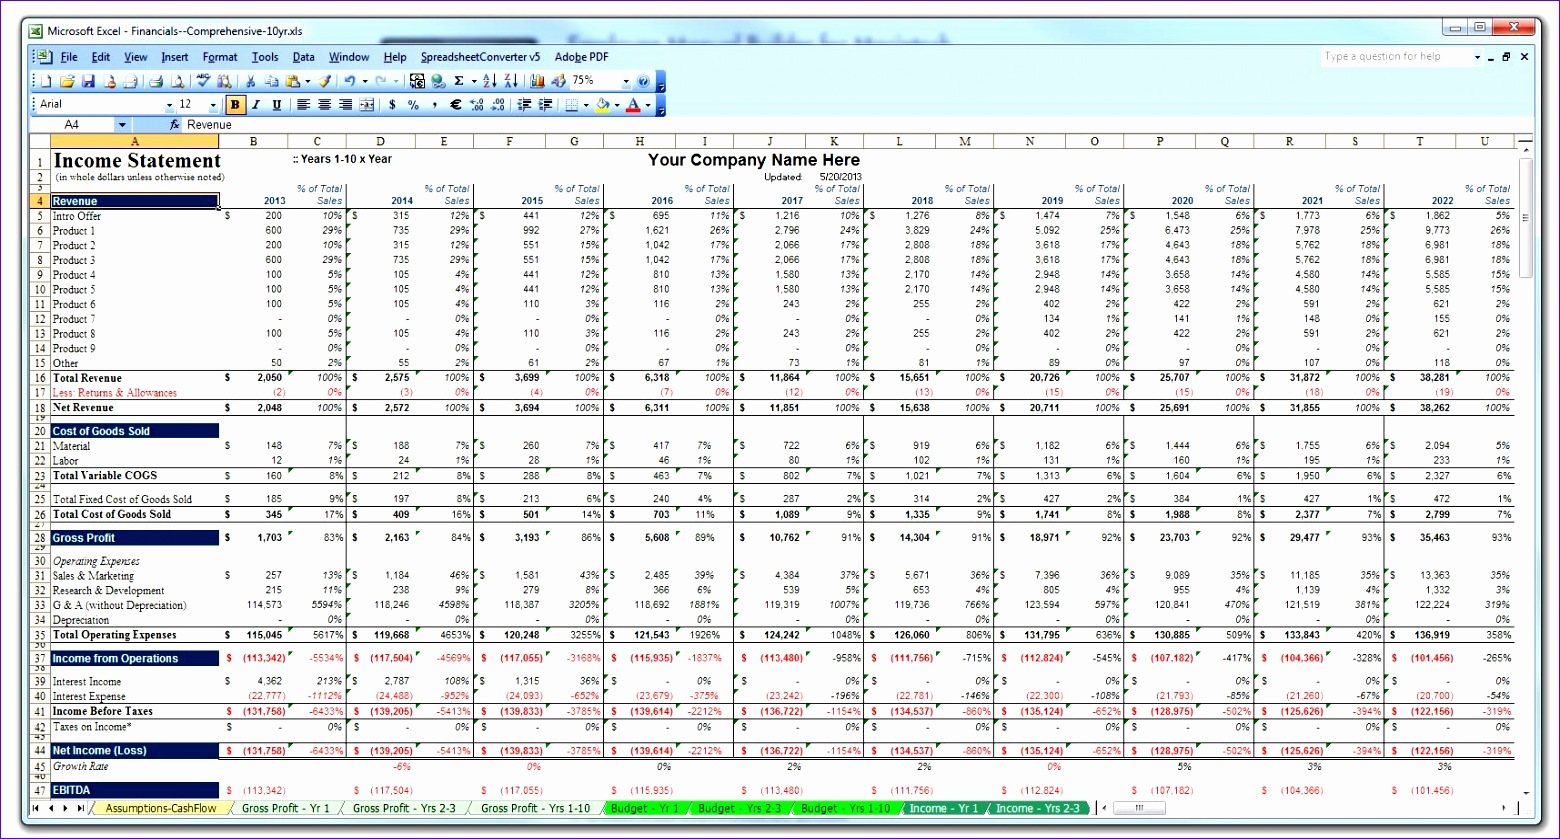 Business Plan Financial Template Excel Ubhcs Fresh 10 Year Business Plan Financial Bud Projection Model In Excel